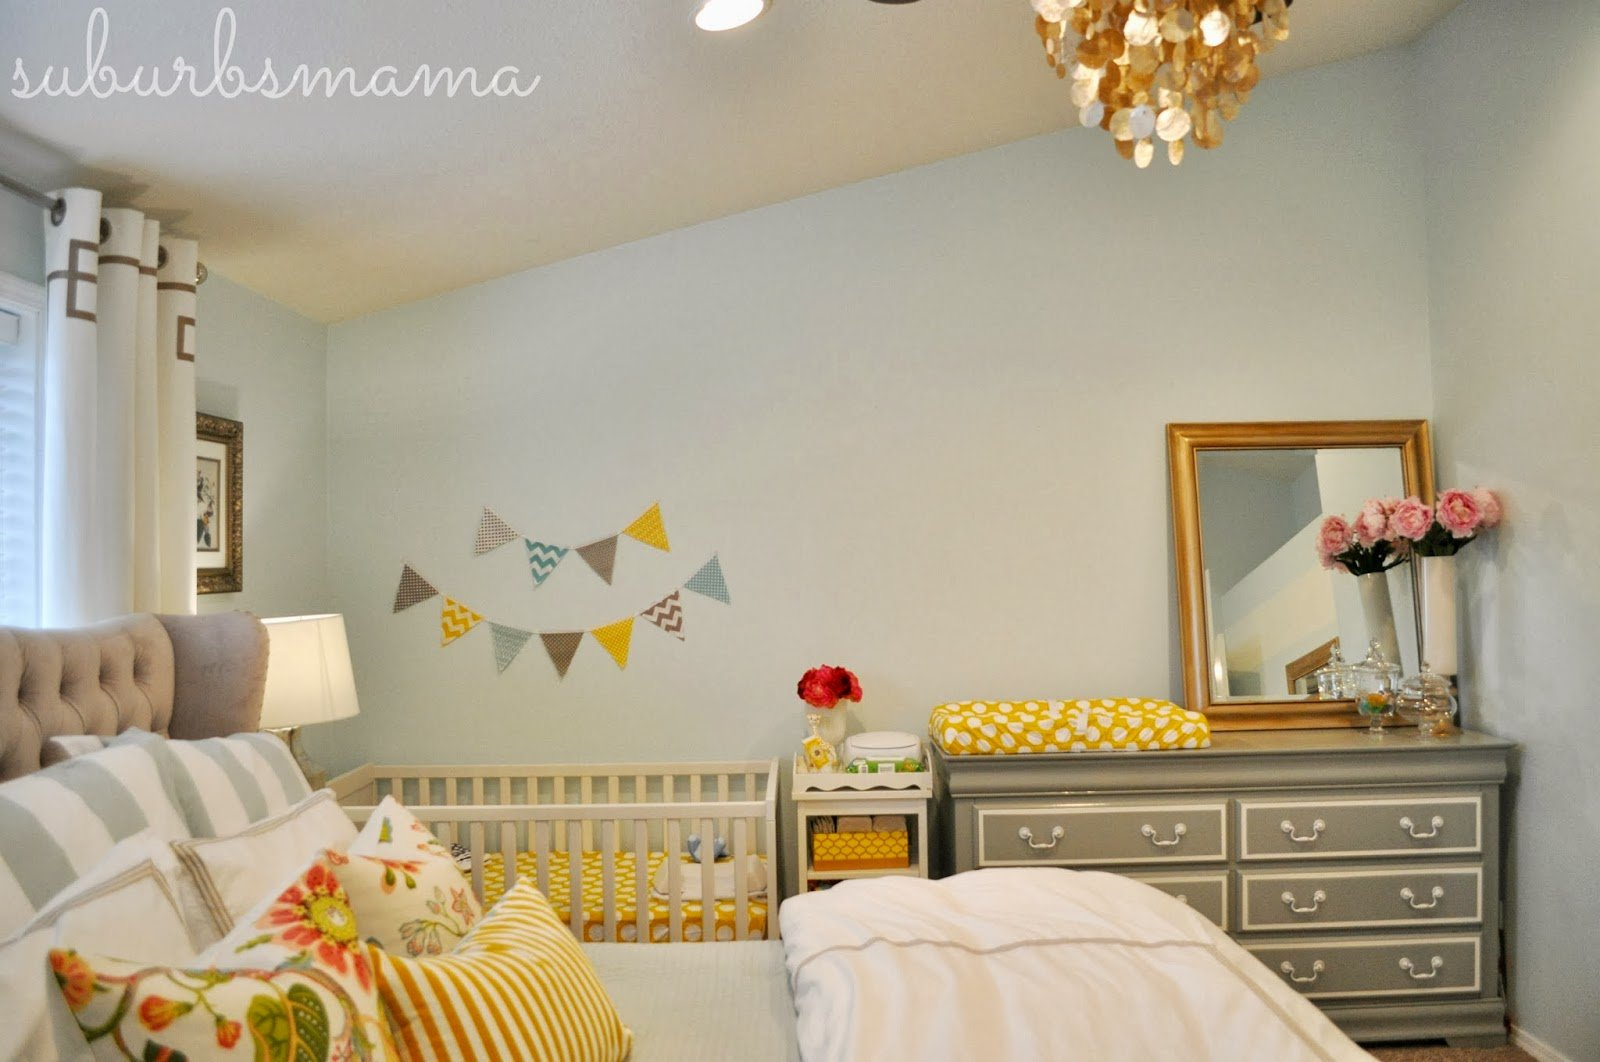 Best Suburbs Mama Nursery In Master Bedroom With Pictures